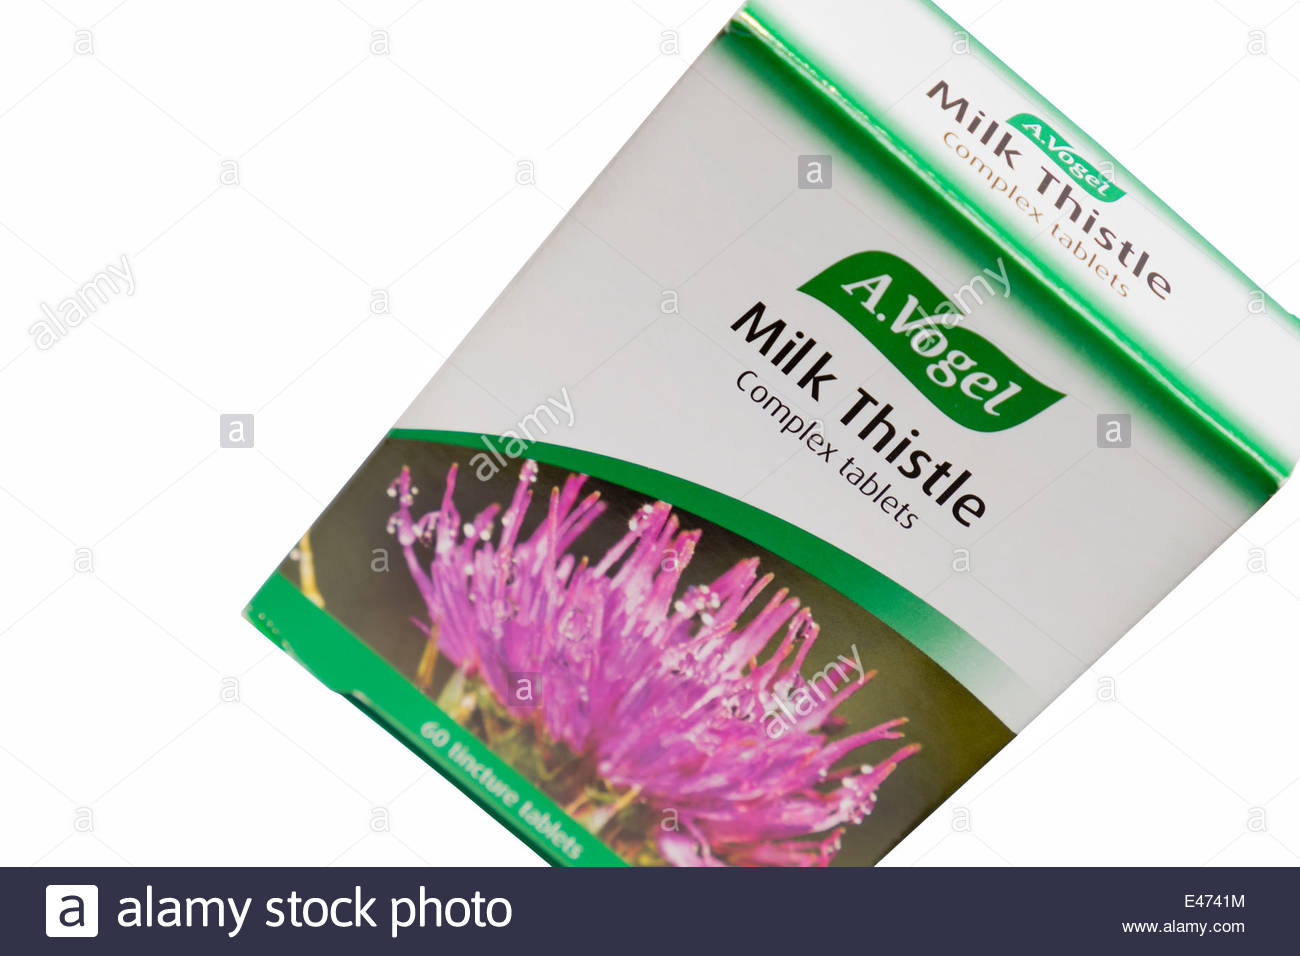 Pack of A Vogel milk thistle tablets - Stock Image